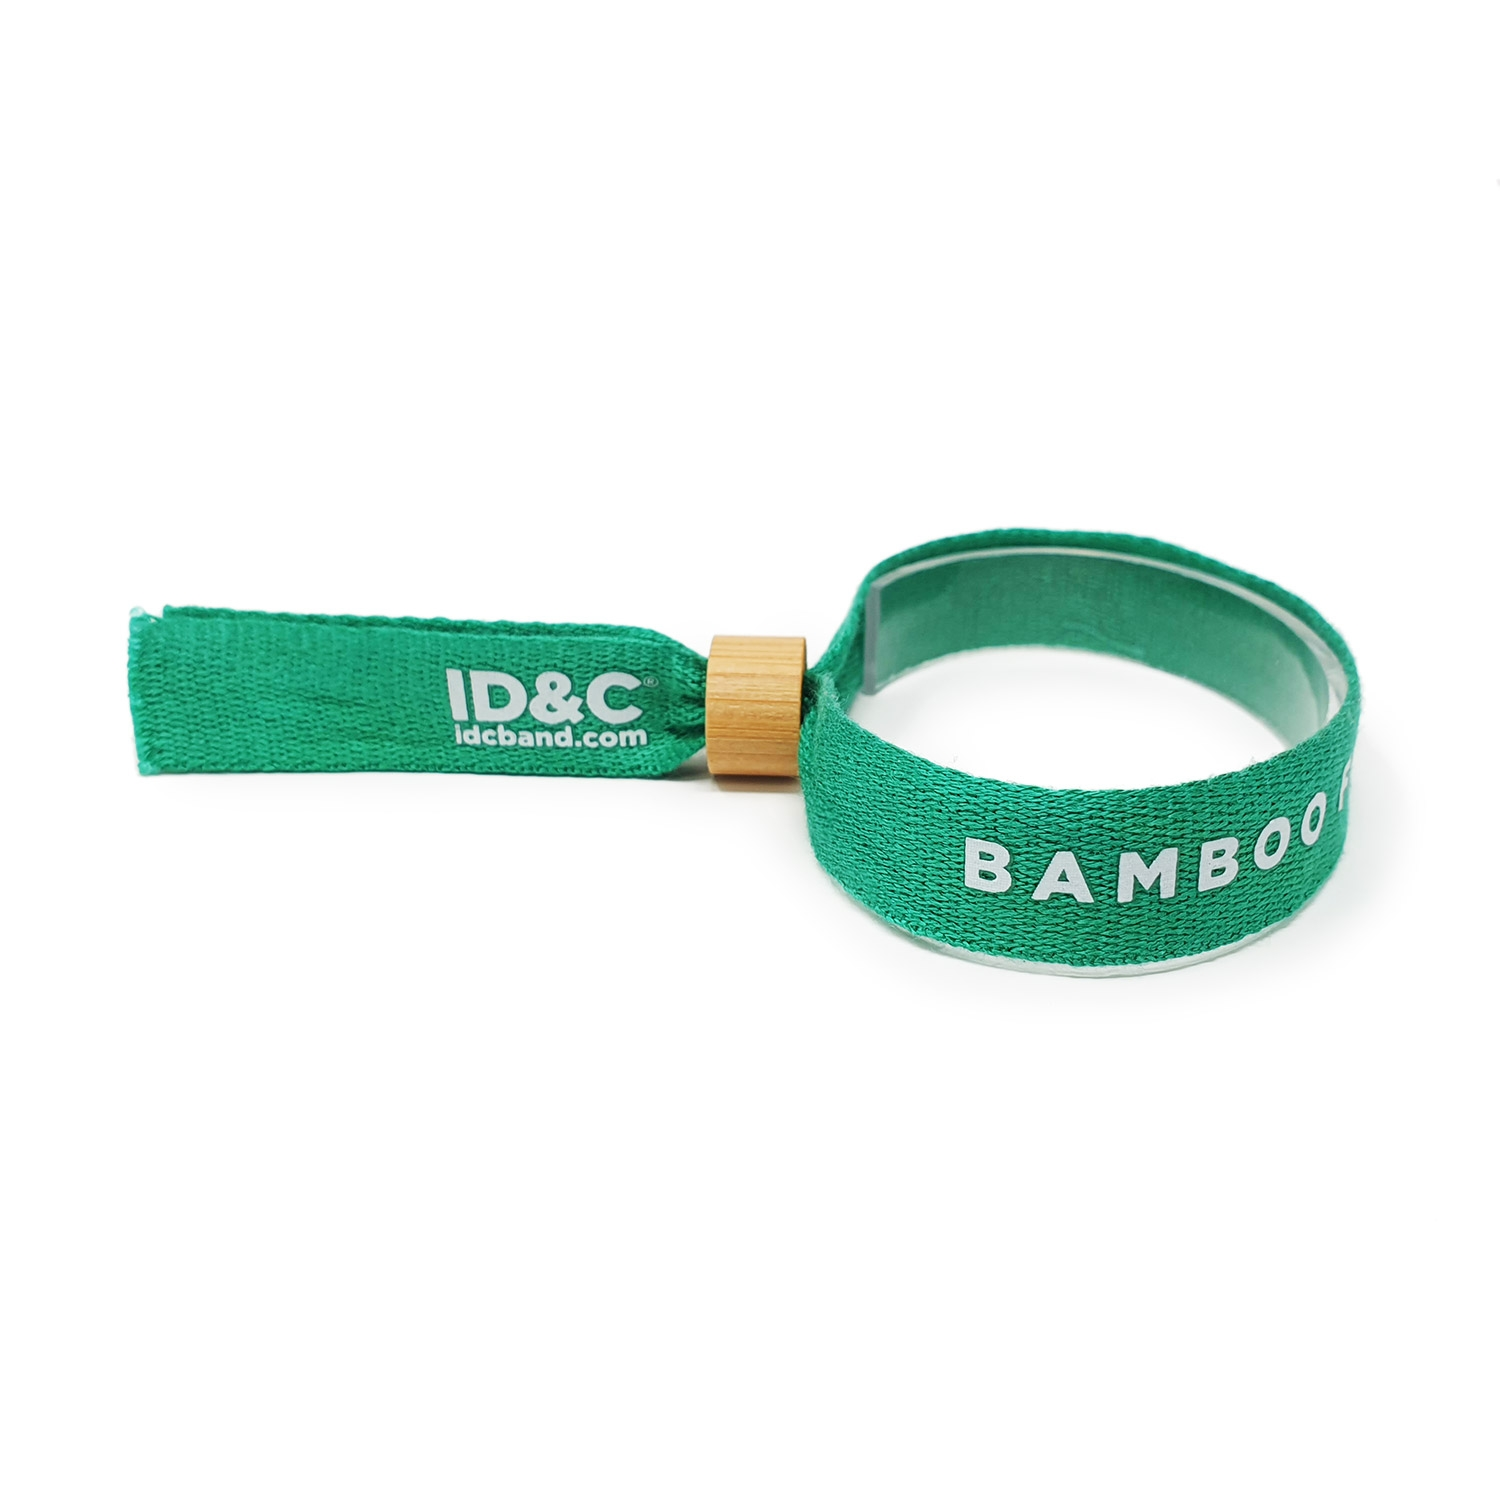 Bamboo Fabric Wristbands